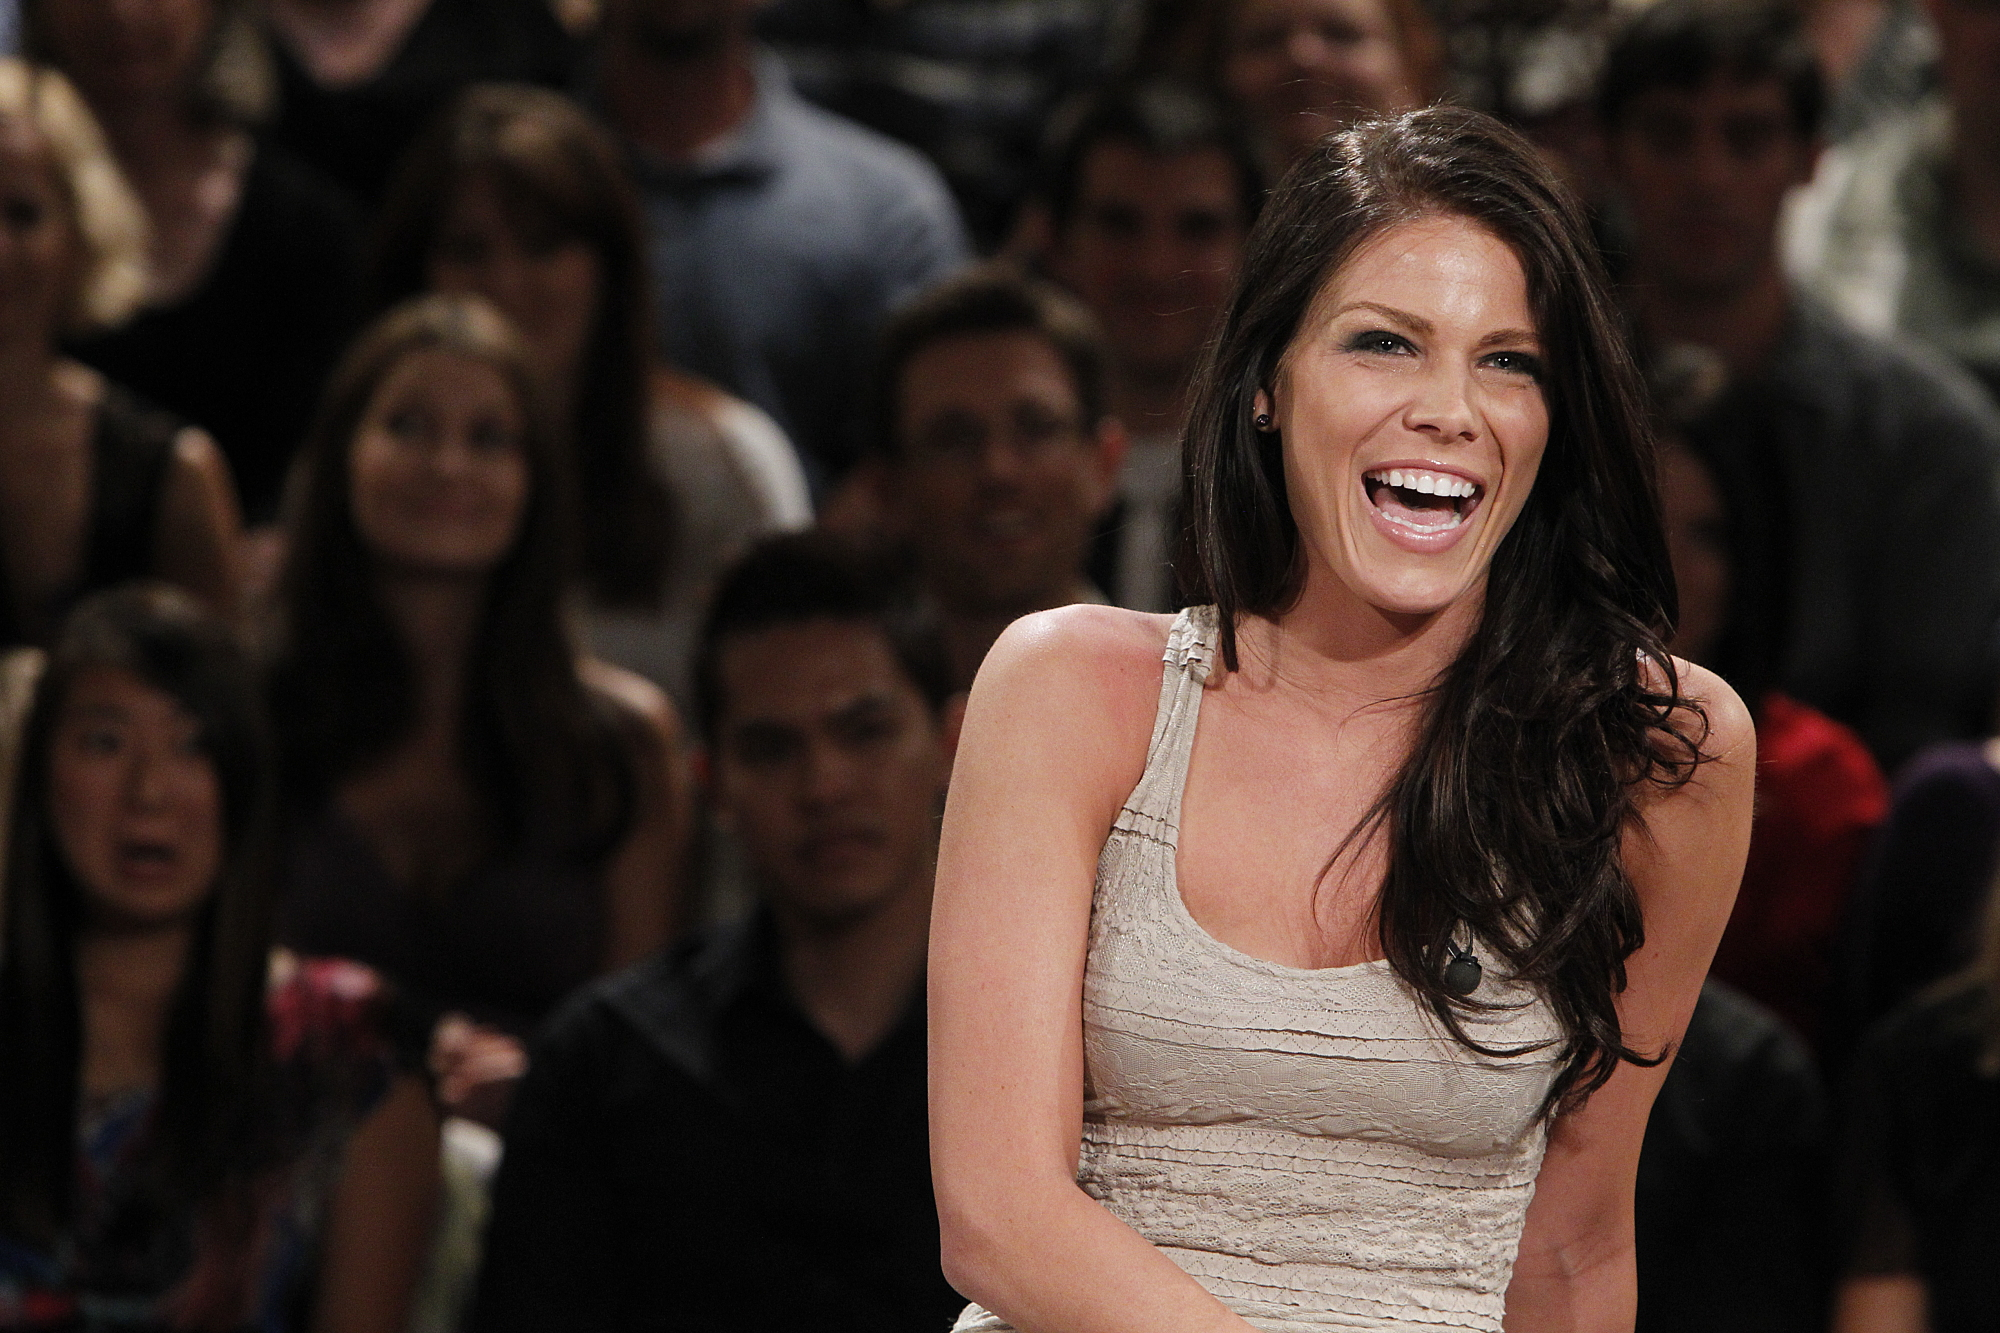 Daniele Donato was evicted from the Big Brother house by a vote of 3-2 during 'Big Brother 13'